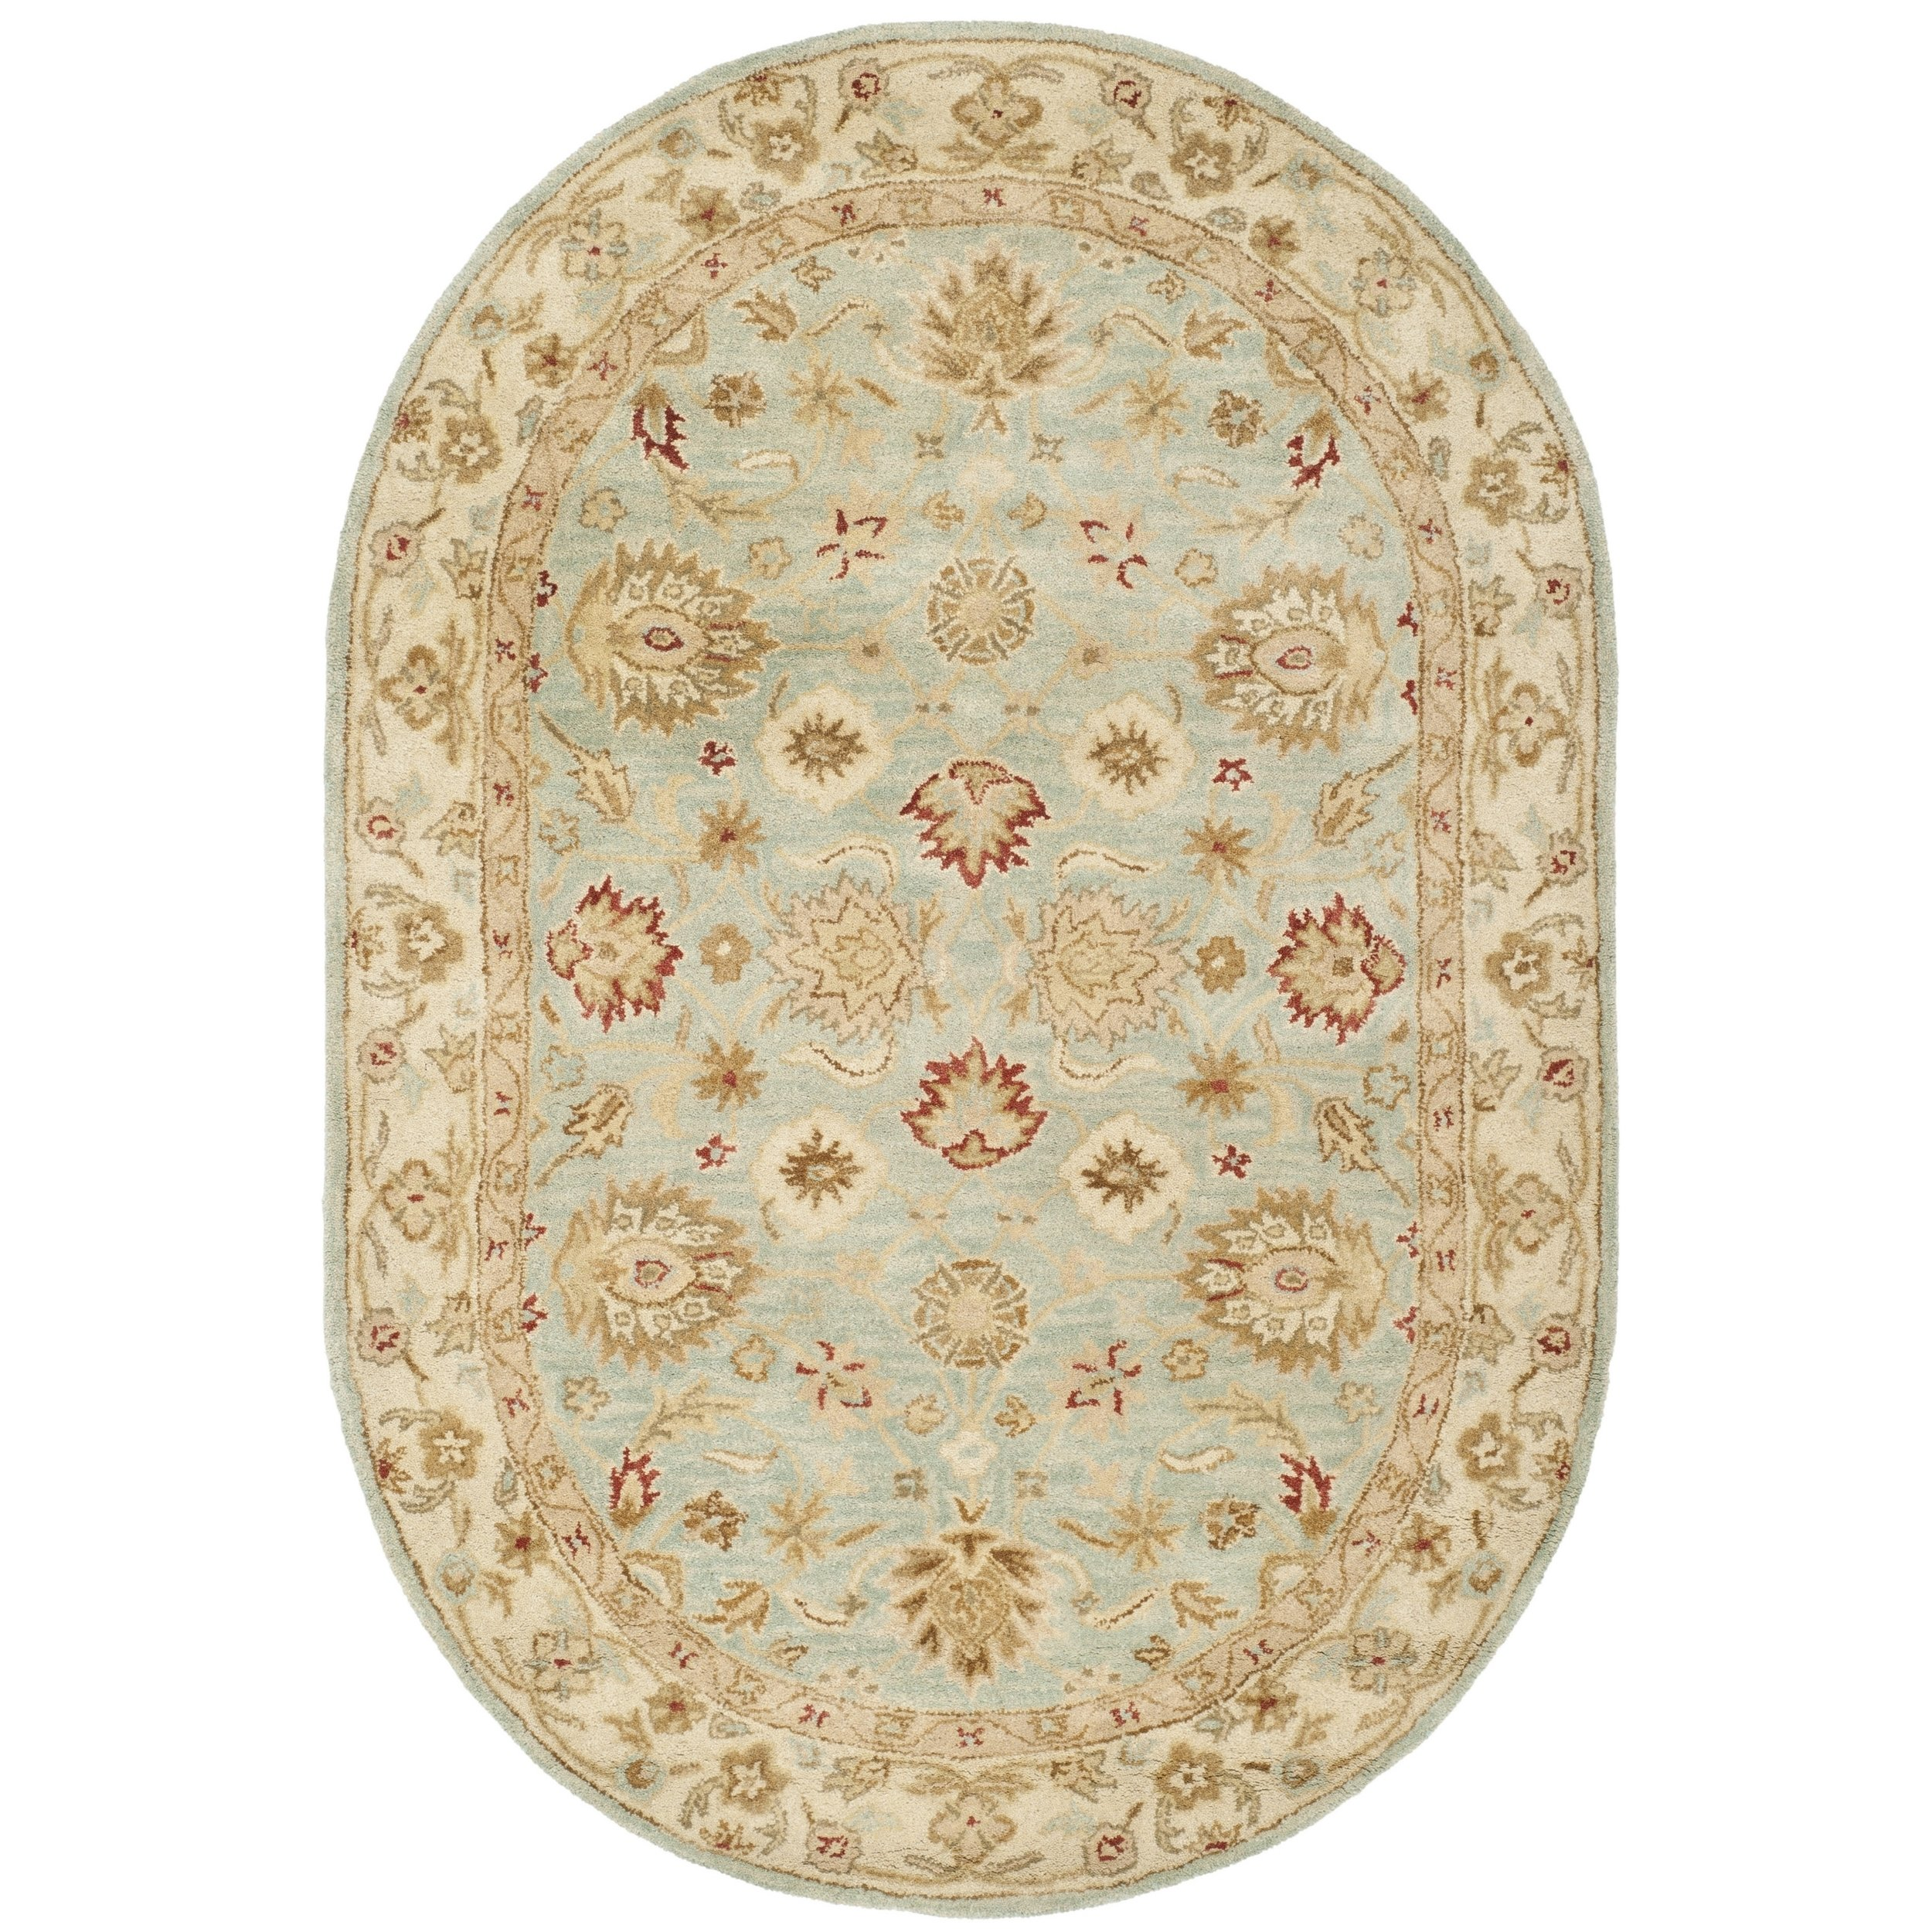 Safavieh Antiquities Collection AT822A Handmade Traditional Oriental Grey Blue and Beige Wool Oval Area Rug (7'6'' x 9'6'' Oval)